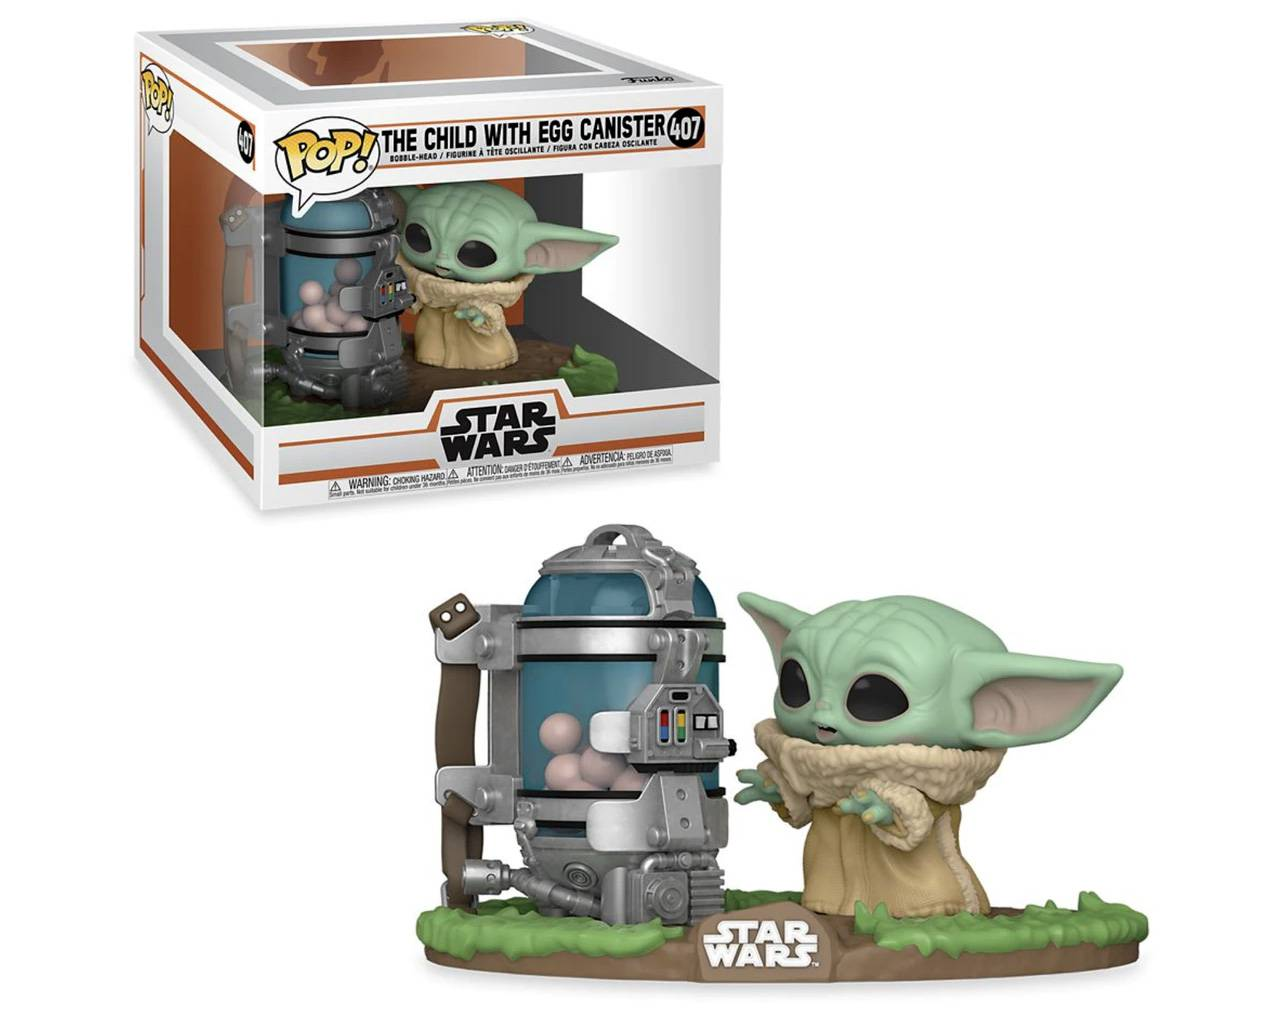 The Child with Eggs Canister Pop! Vinyl